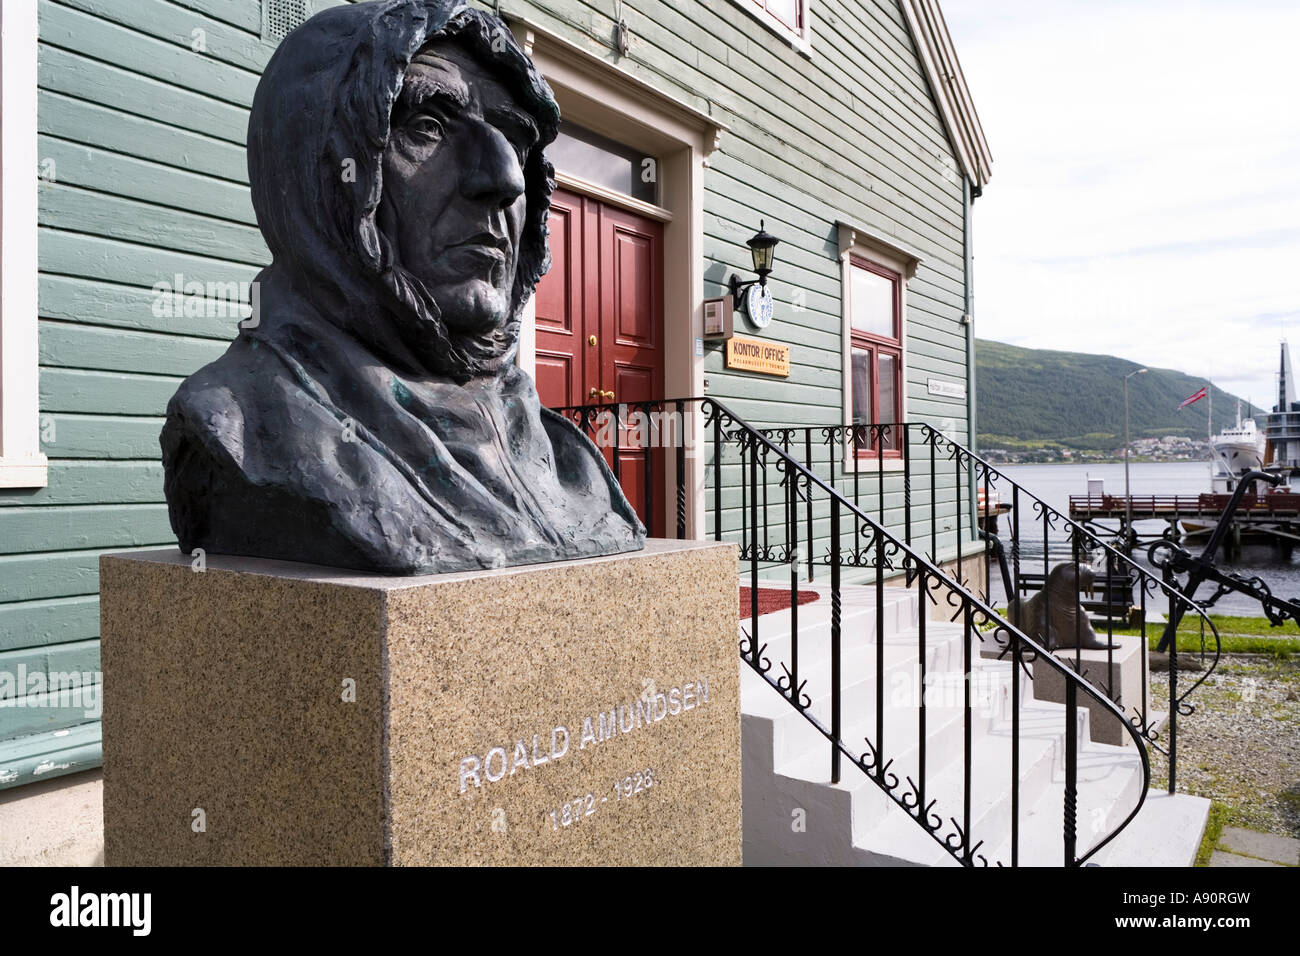 Statue of Roald Amundsen by the harbour at Tromso Norway Stock Photo